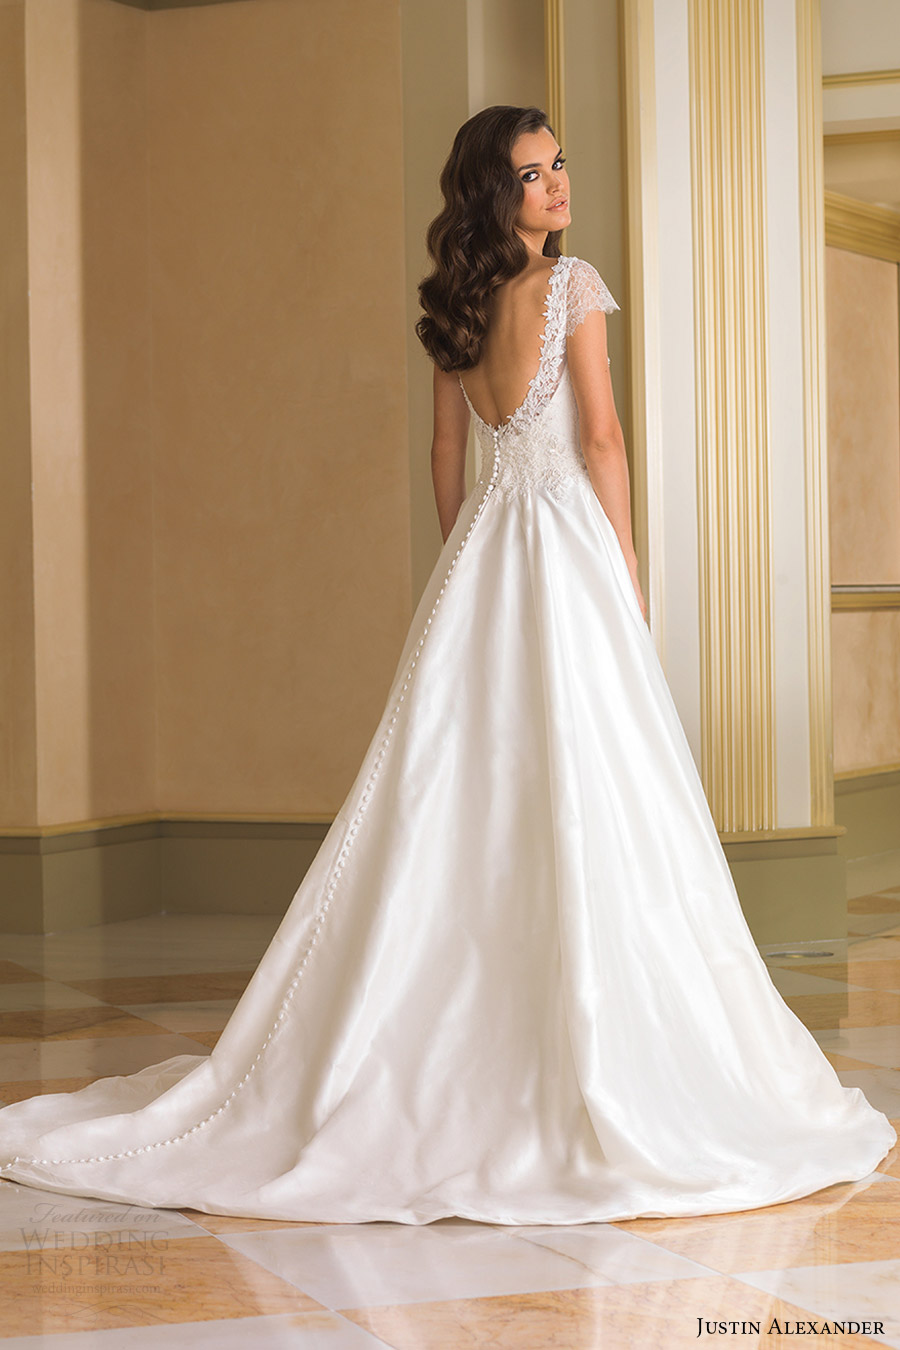 justin alexander bridal fall 2016 cap sleeves illusion bateau neck ball gown wedding dress (8852) bv train romantic